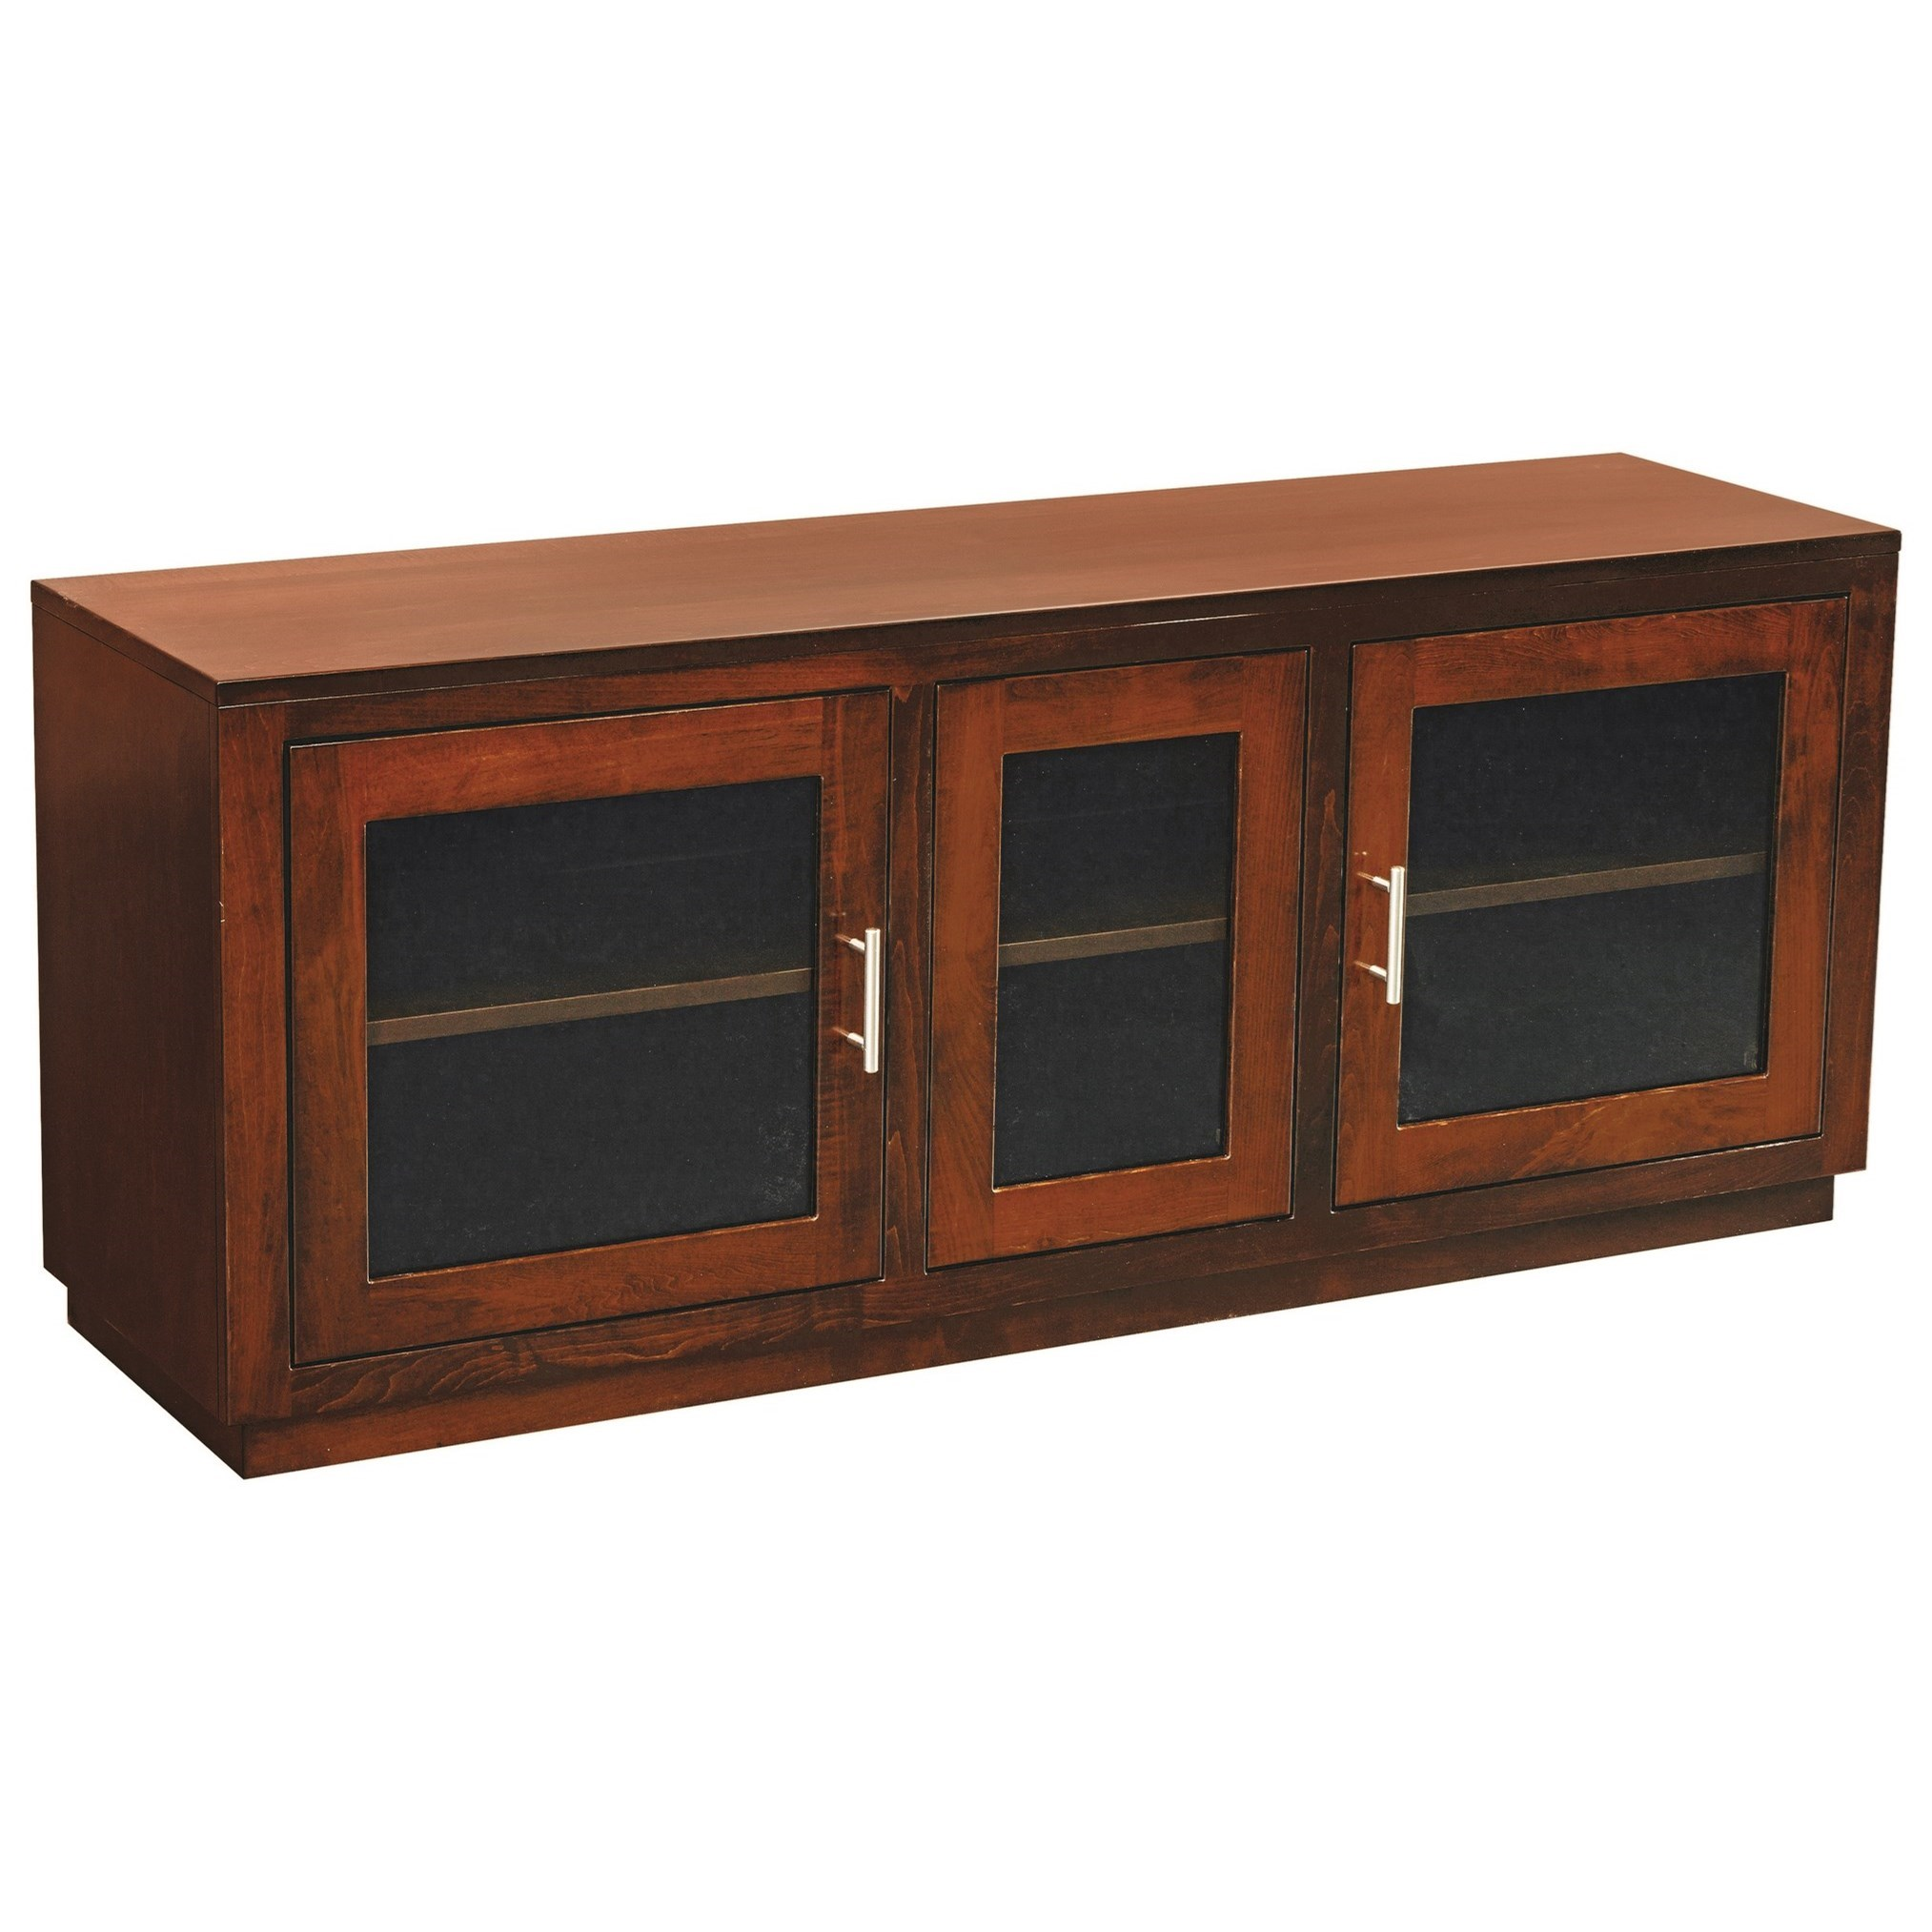 Entertainment Econ TV Stand by INTEG Wood Products at Saugerties Furniture Mart